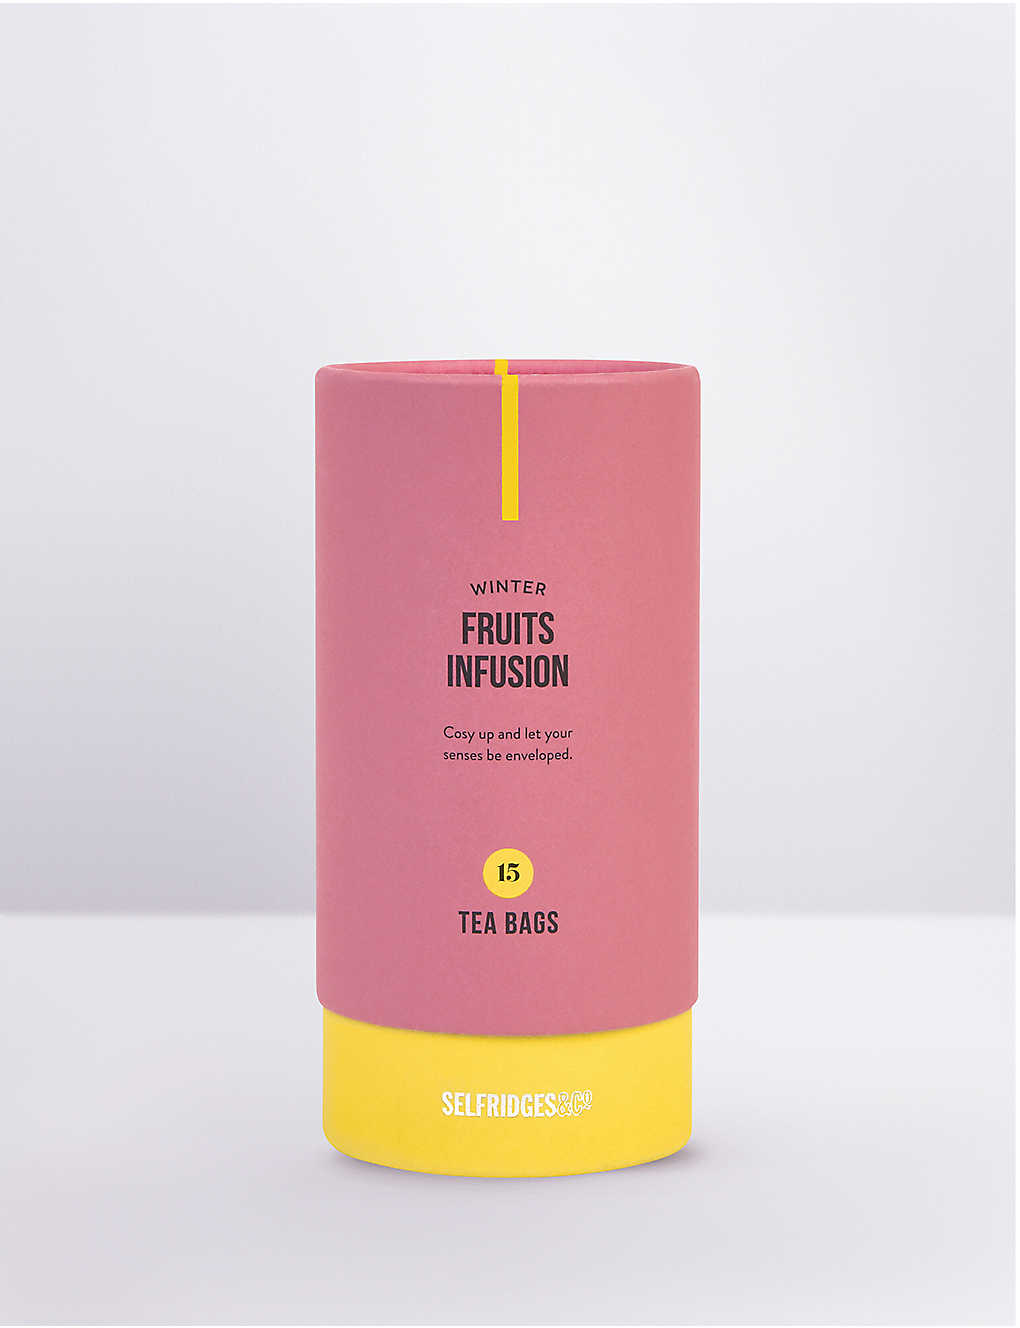 SELFRIDGES SELECTION: Winter fruits infusion 15 tea bags